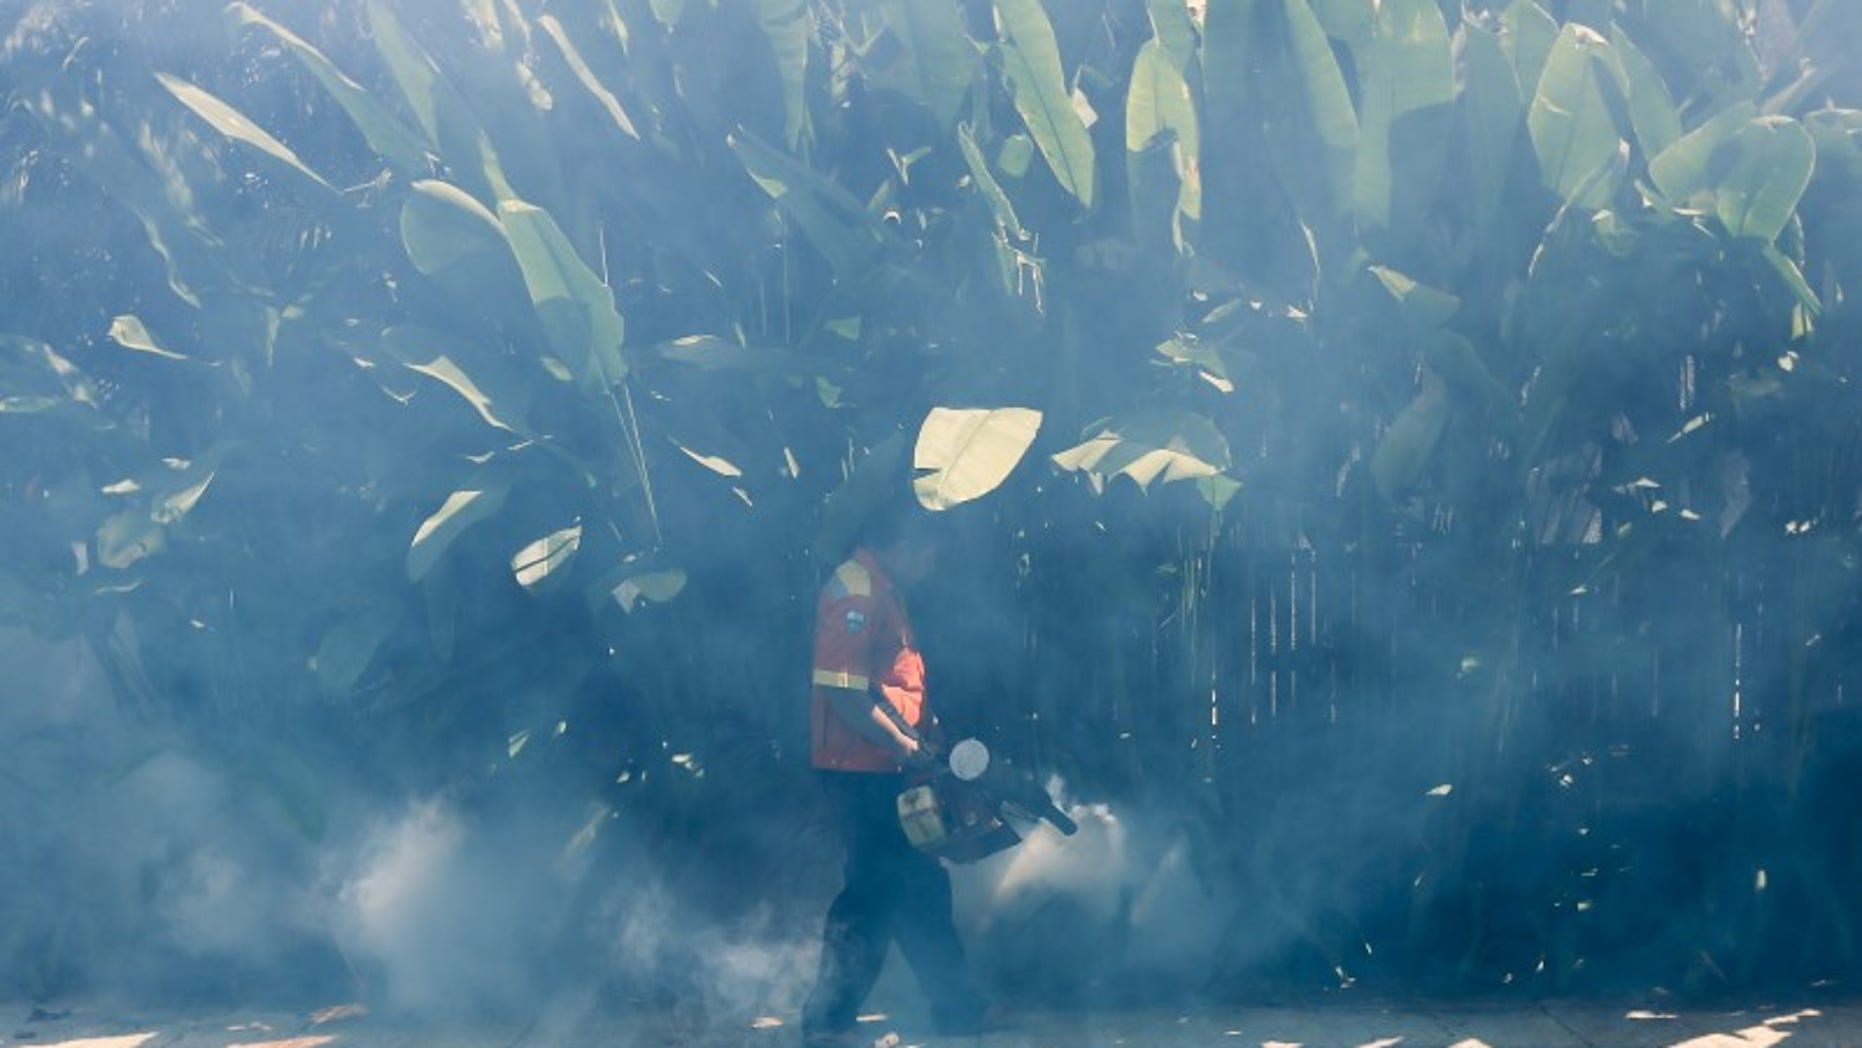 A worker fumigates the area to control the spread of mosquitoes in Bangkok